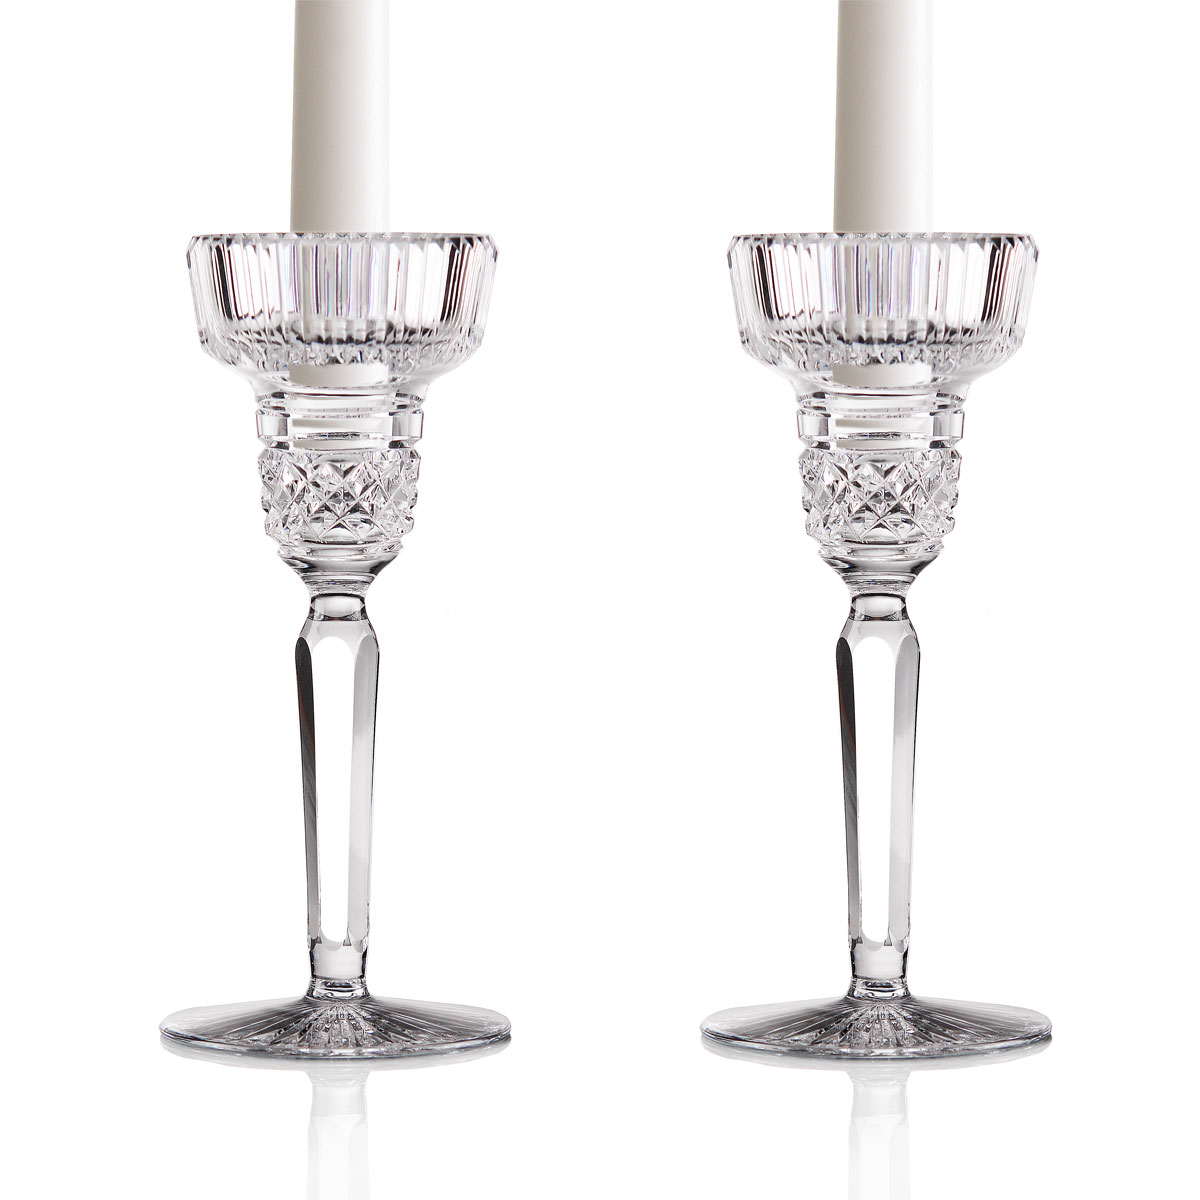 "Cashs Ireland, Cooper 7"" Crystal Candlesticks, Pair"